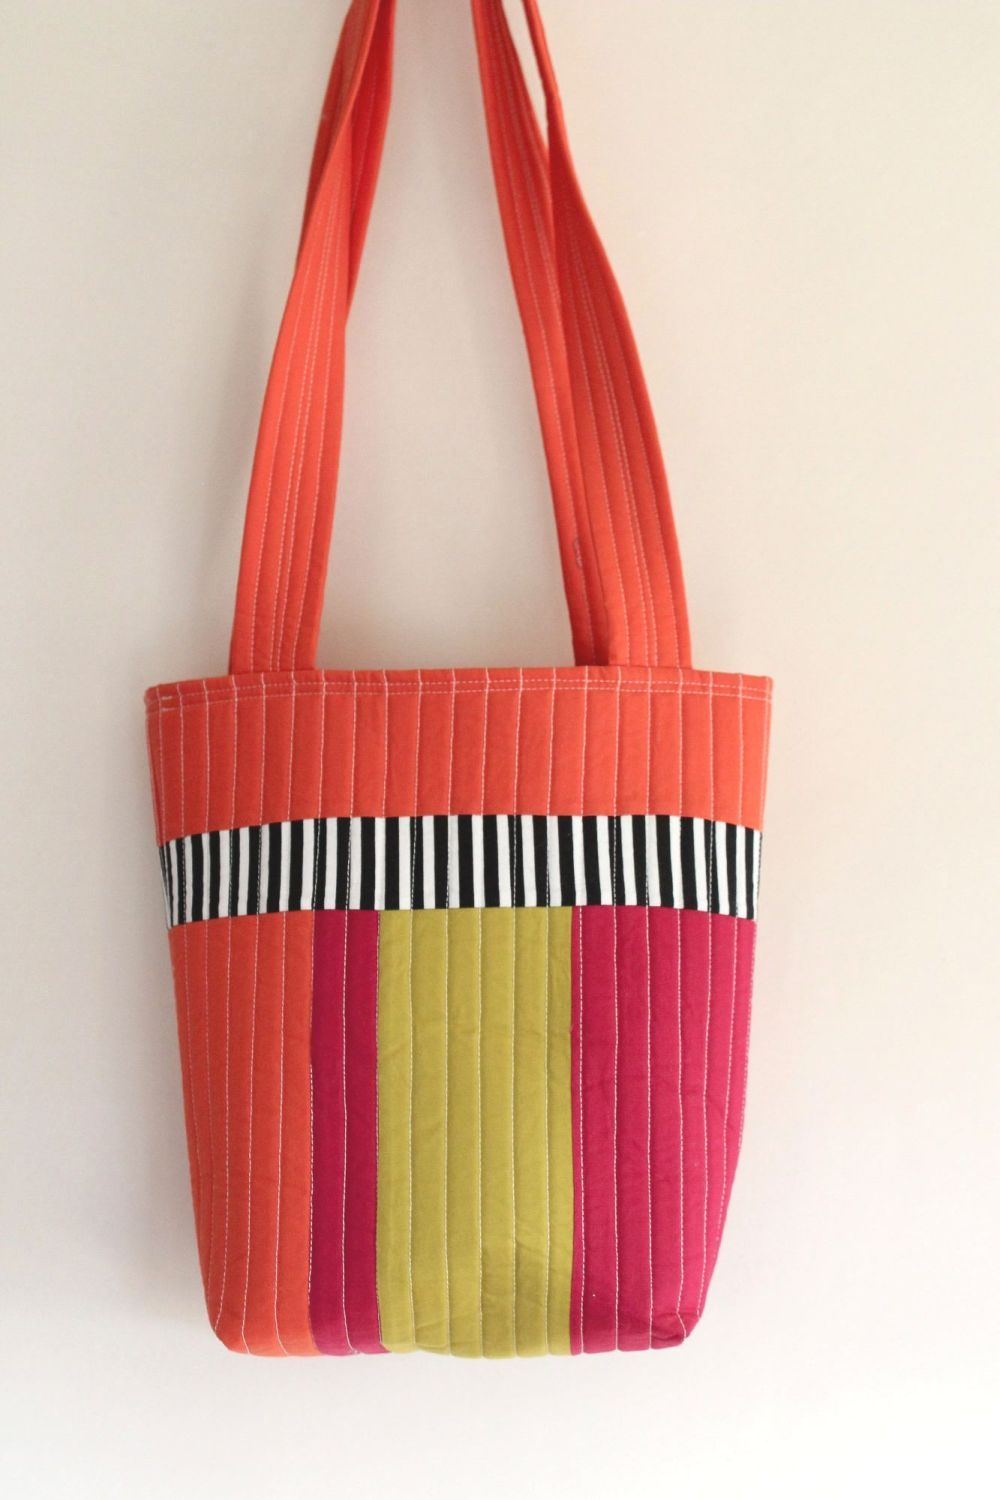 Small Tote Bag in Orange Pink and Pickle(2)